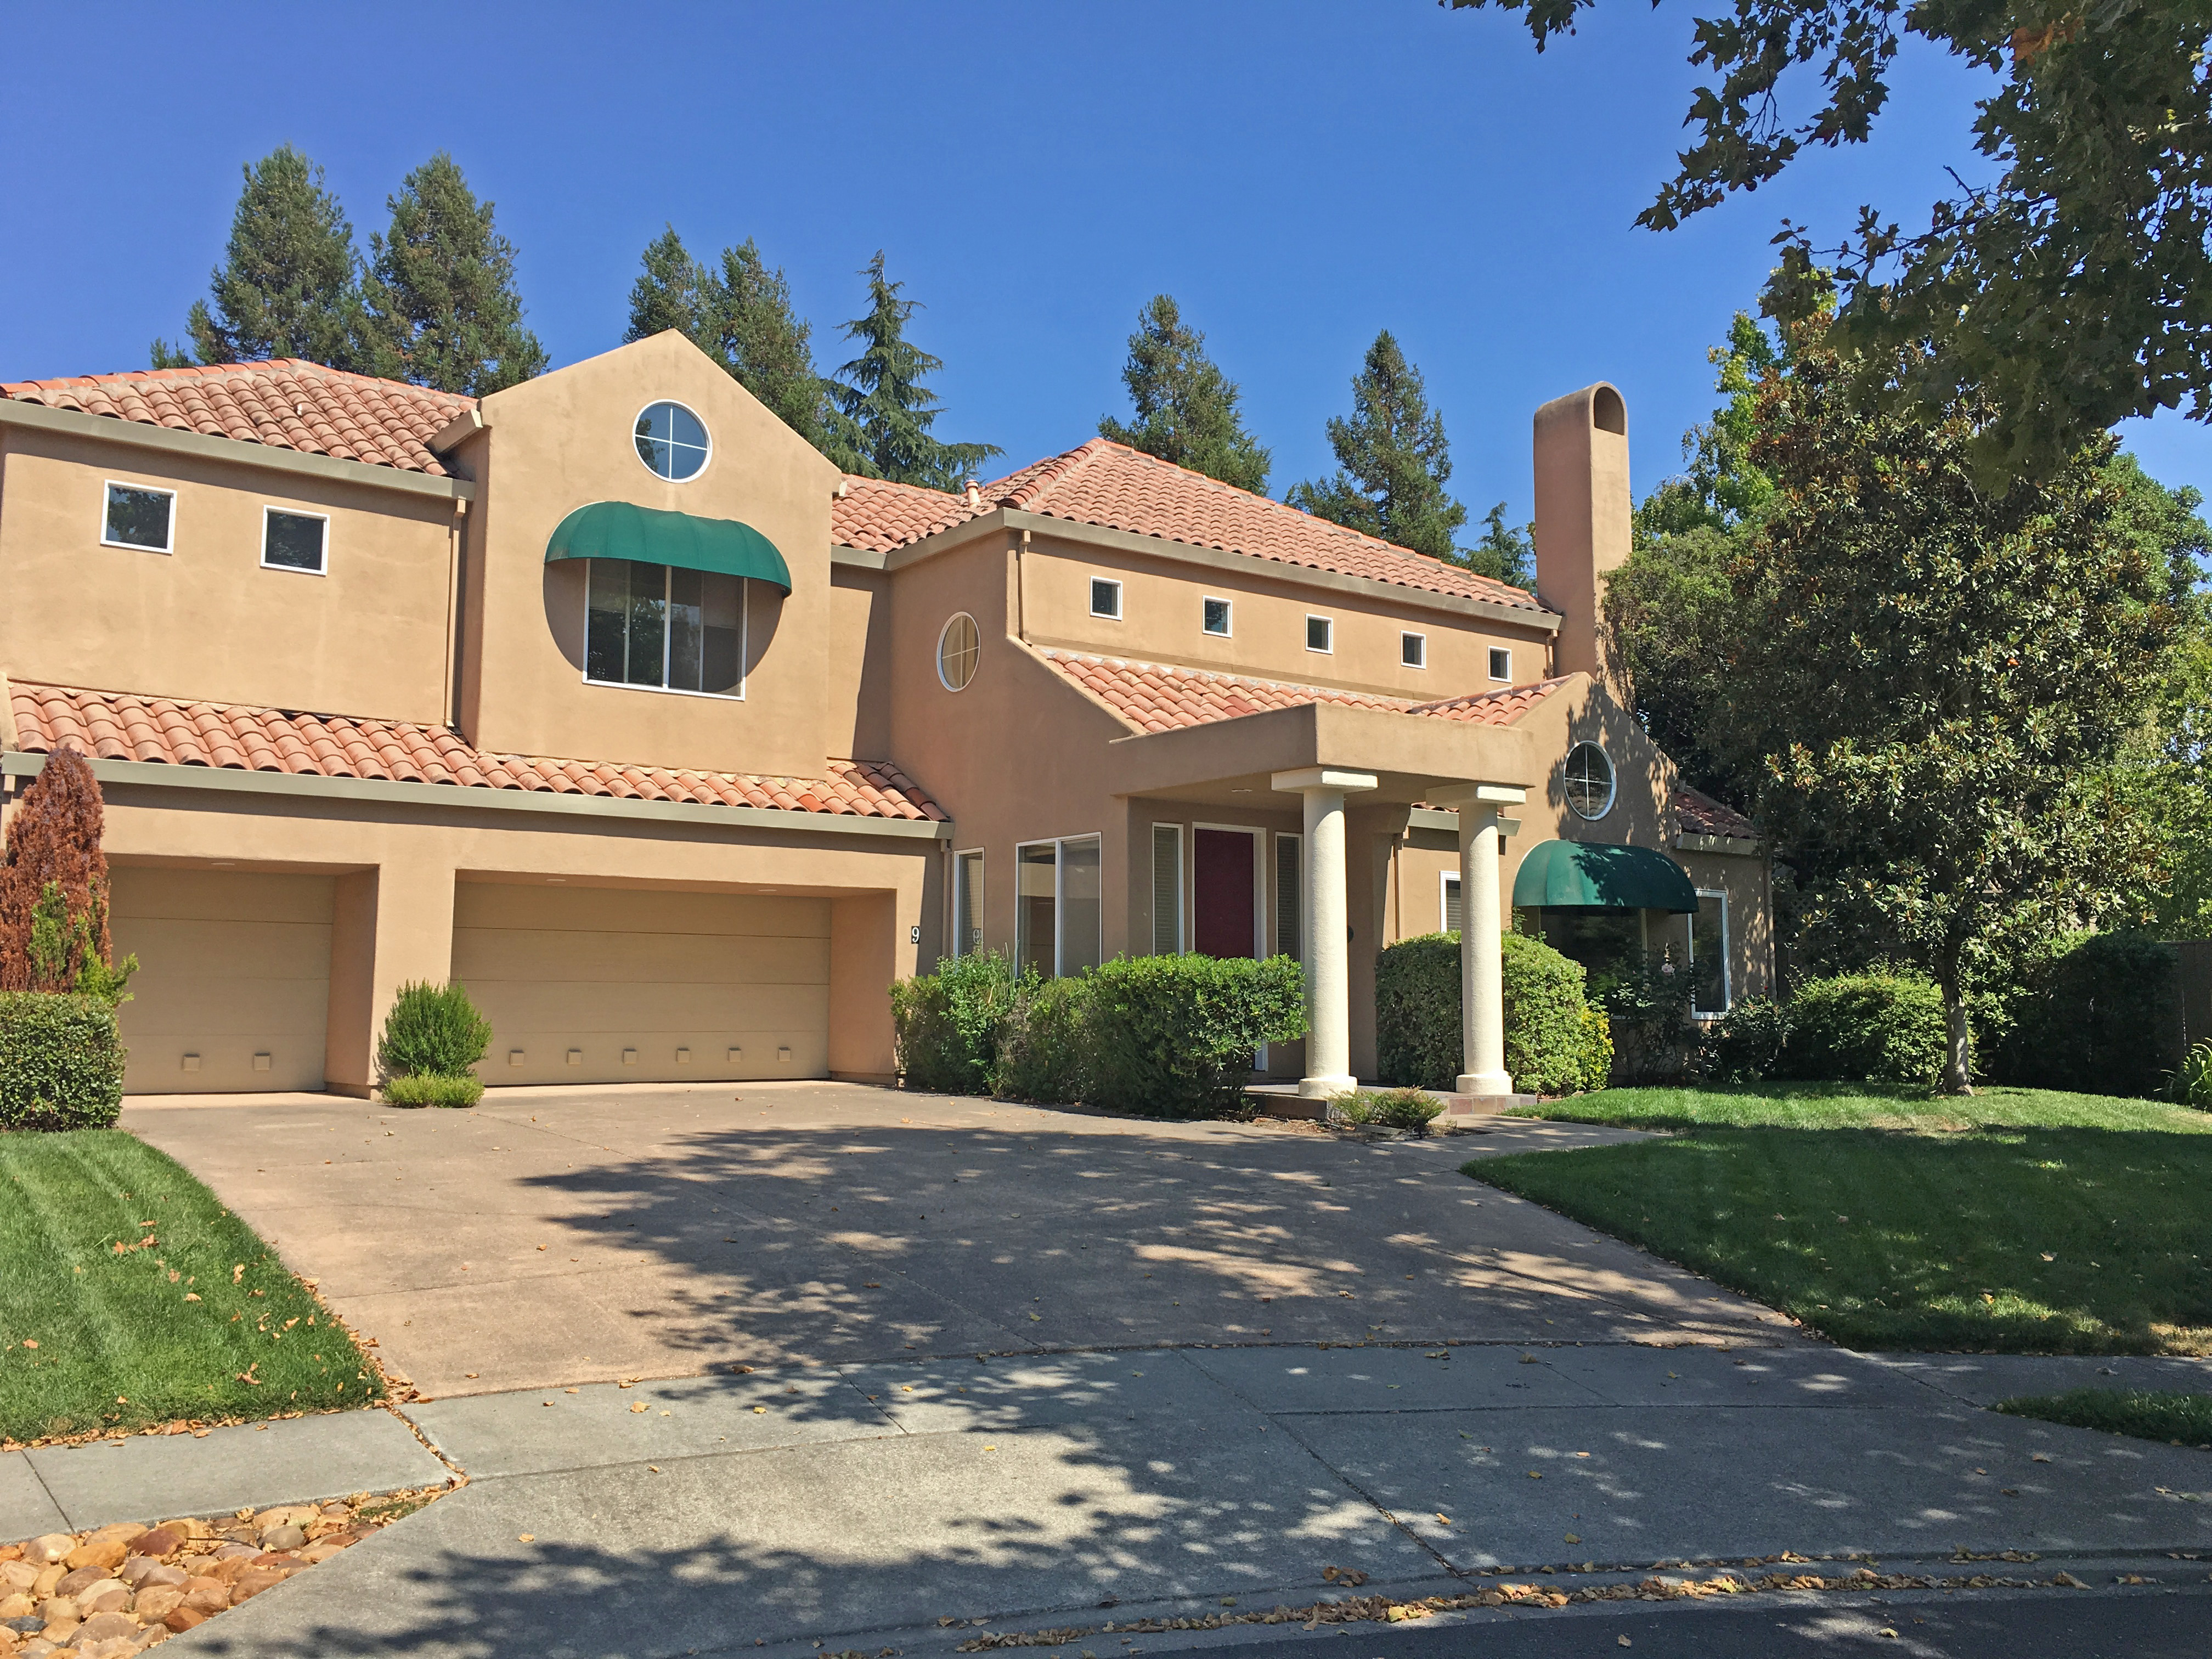 Single Family Home for Sale at 9 Emperor Court Napa, California, 94558 United States